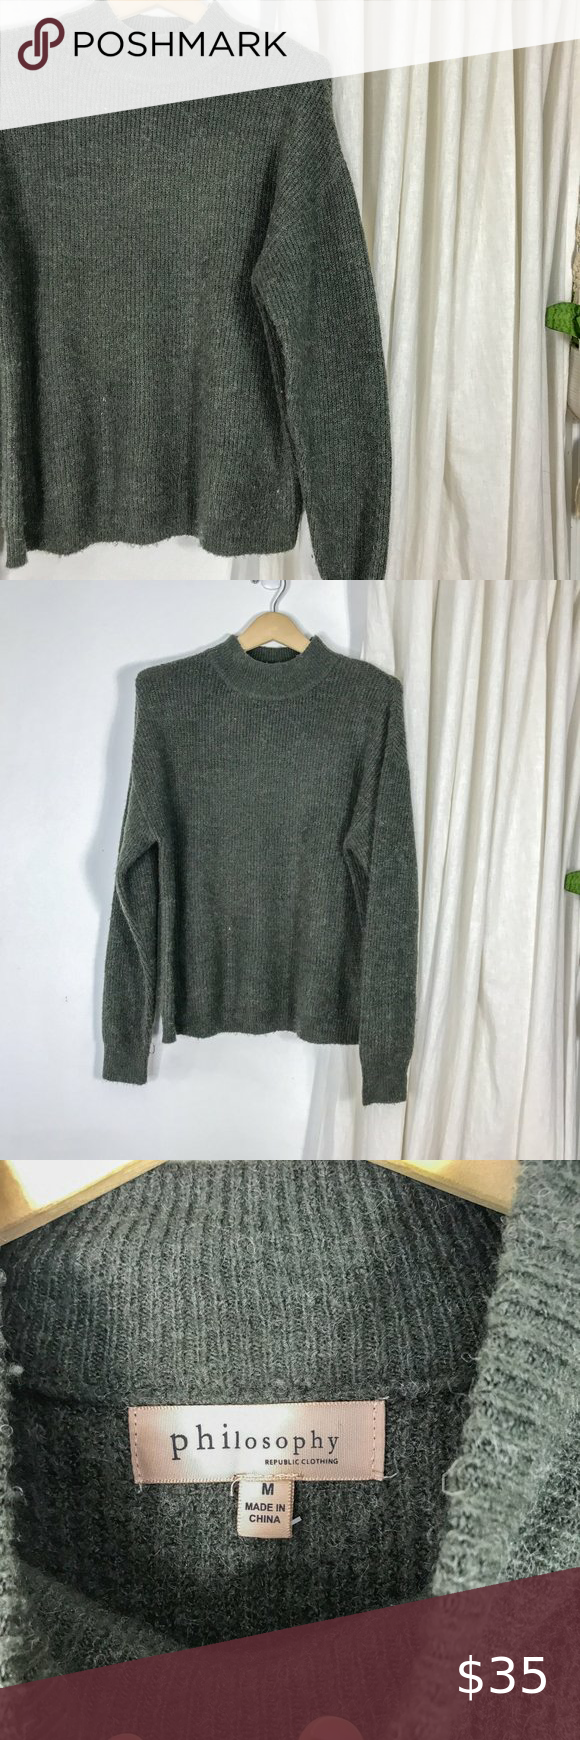 Philosophy Olive Green Mock Neck Sweater Pullover Philosophy Olive Green Mock Neck Sweater Pullover Styling Ribbe Mock Neck Sweater Mock Neck Pullover Styling